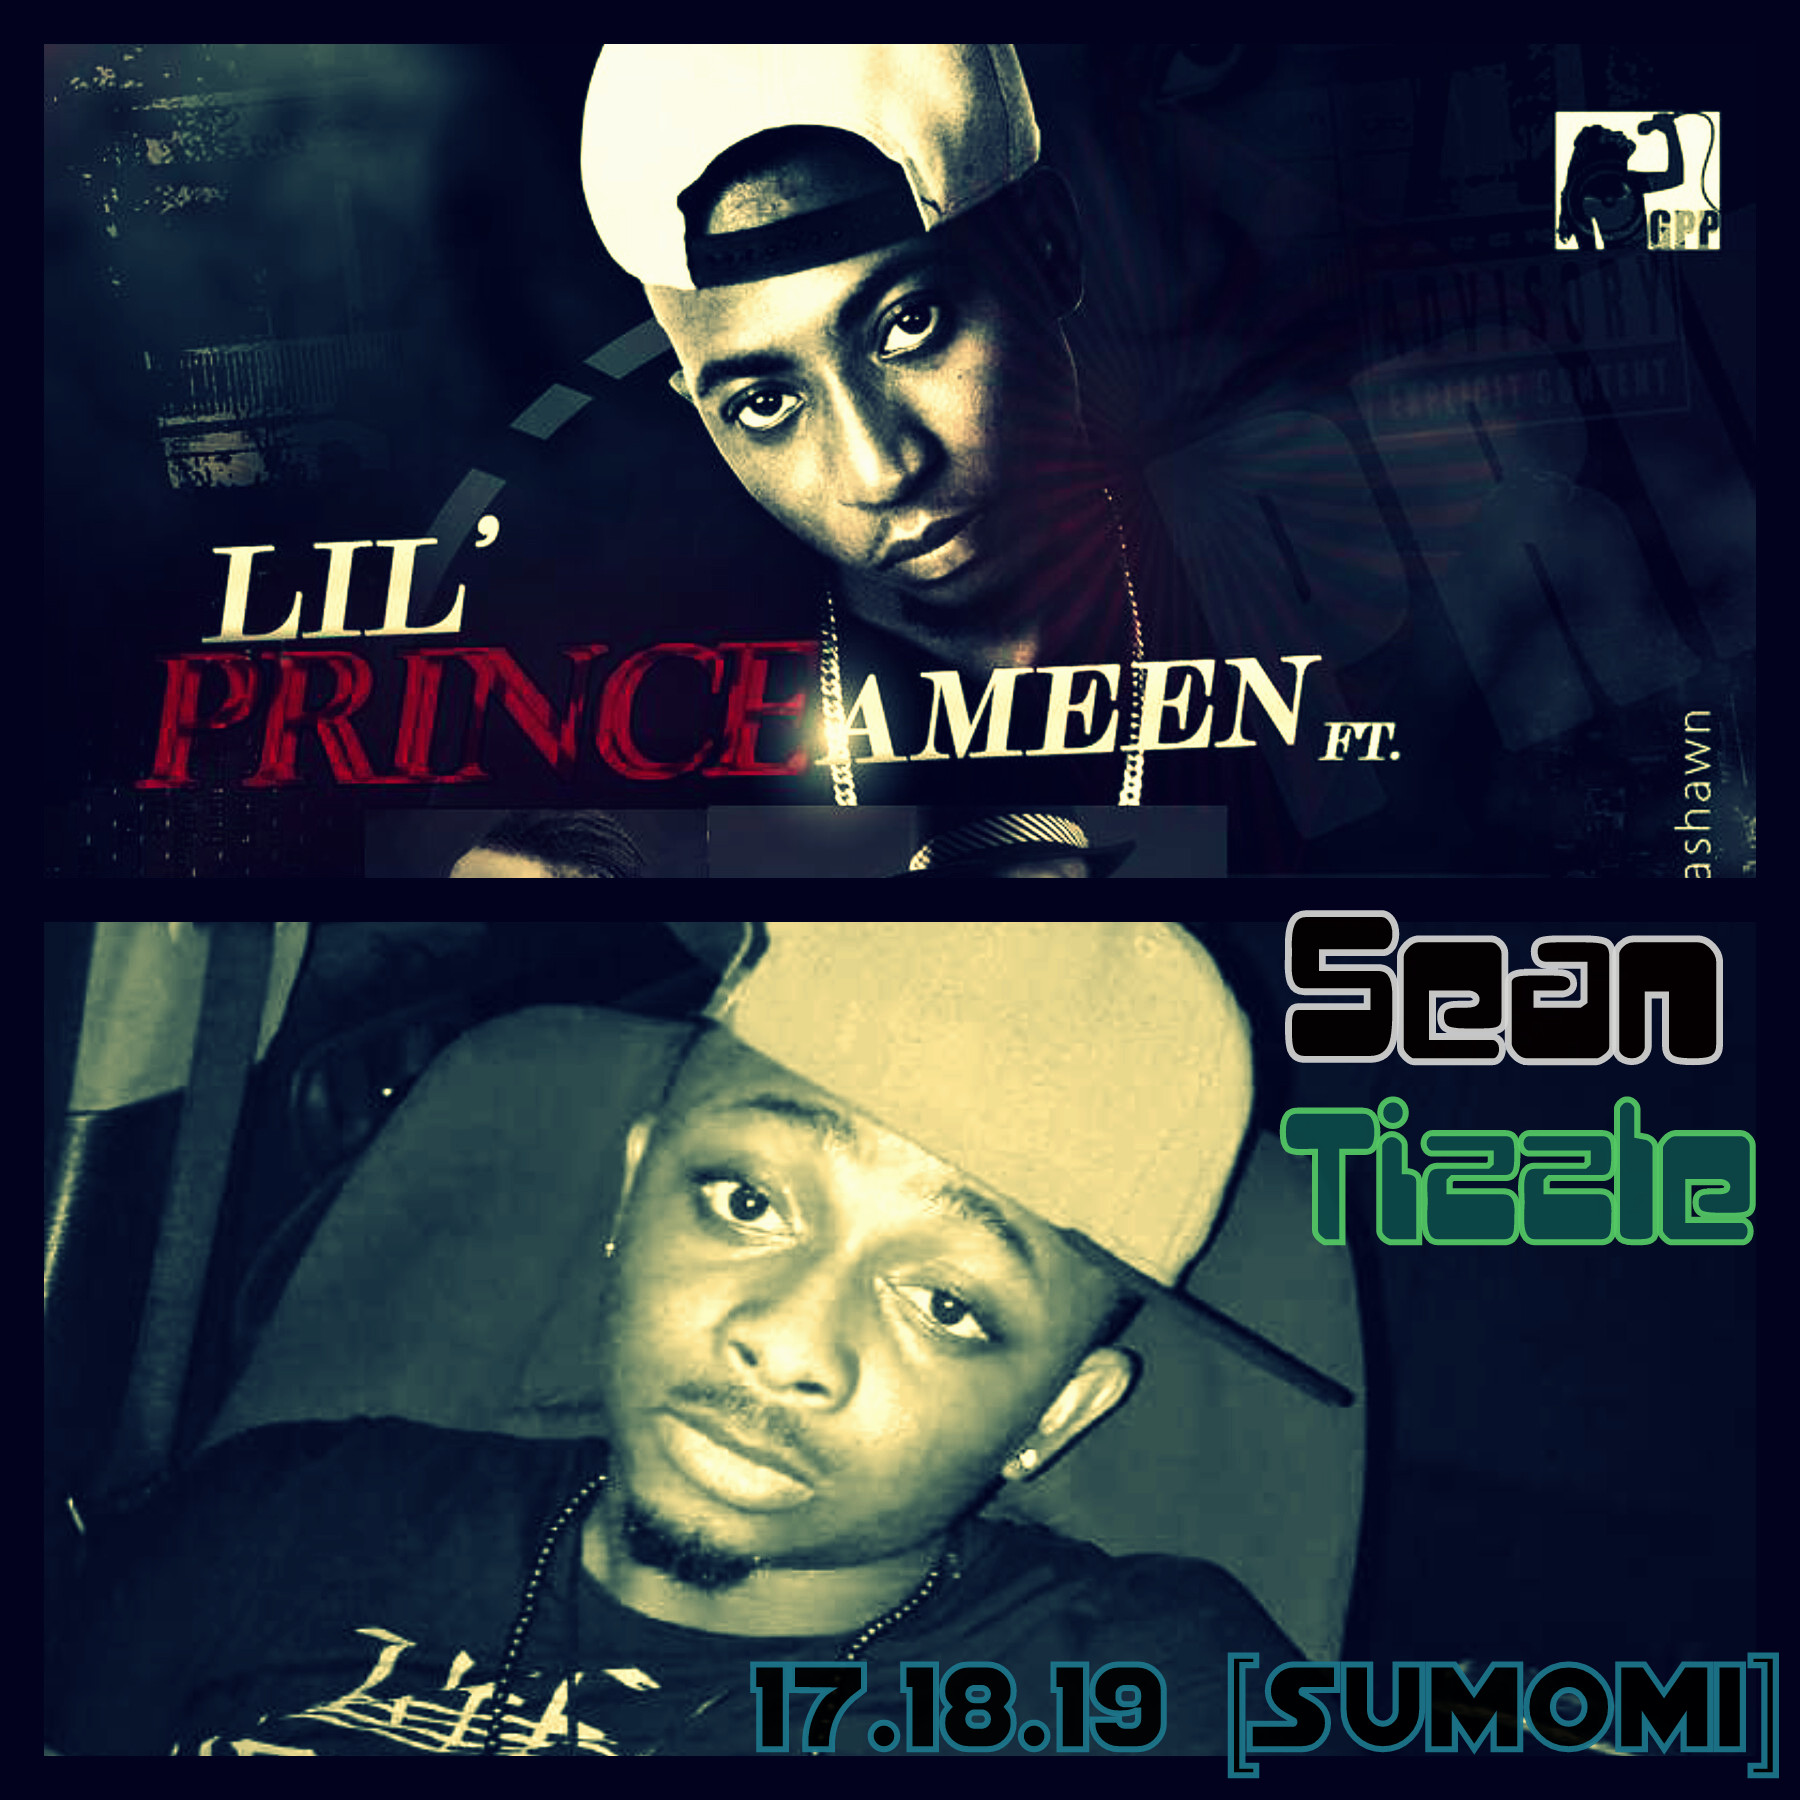 17.18.19 [sumomi] ft. Sean Tizzle by Lil' Prince Ameen